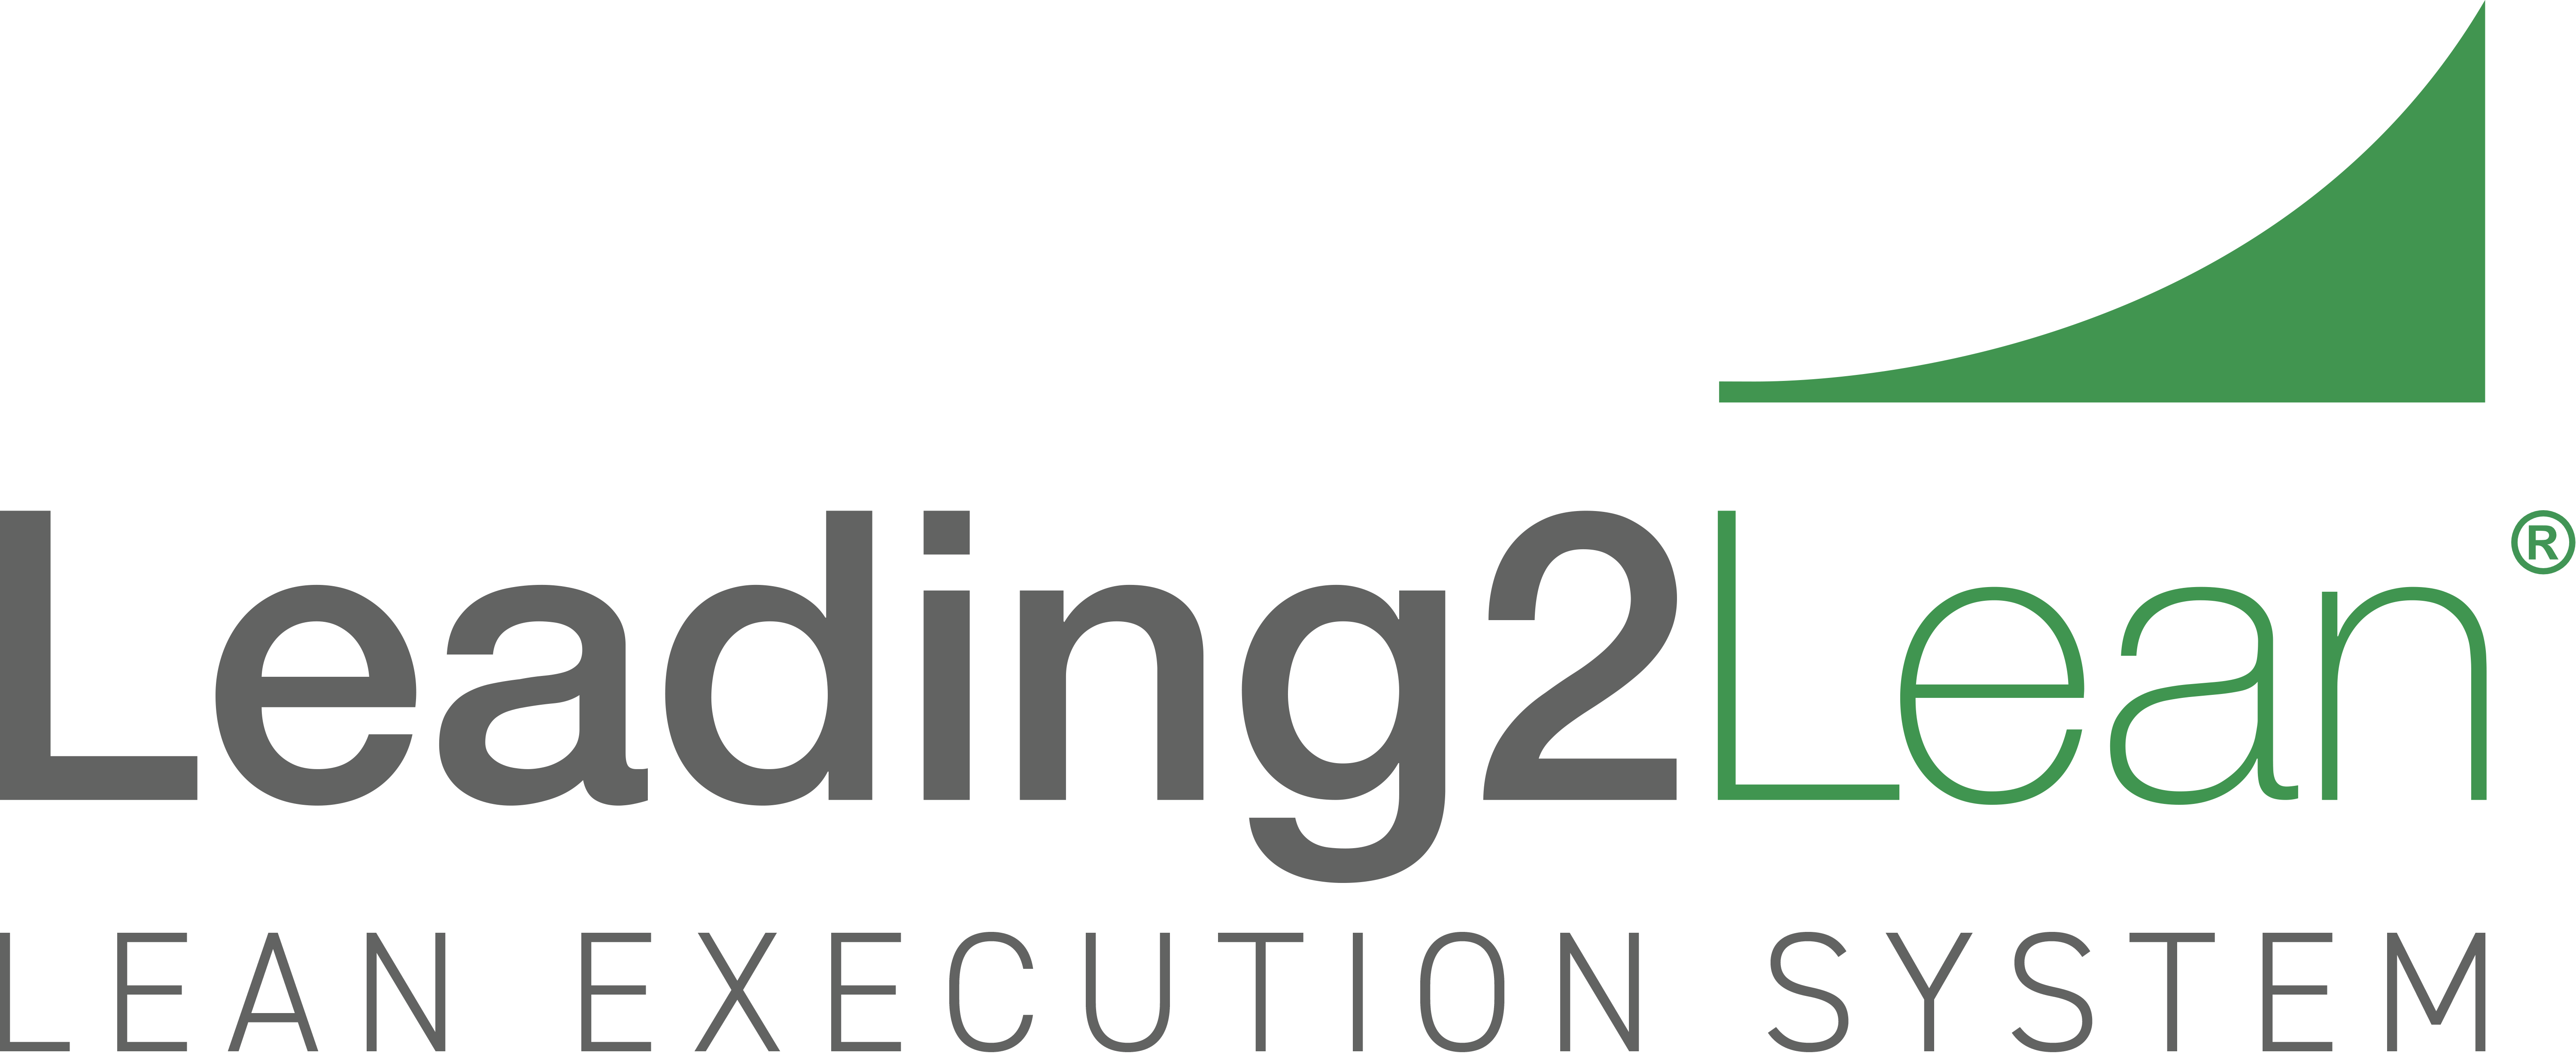 Leading2Lean-Logo-highresolution